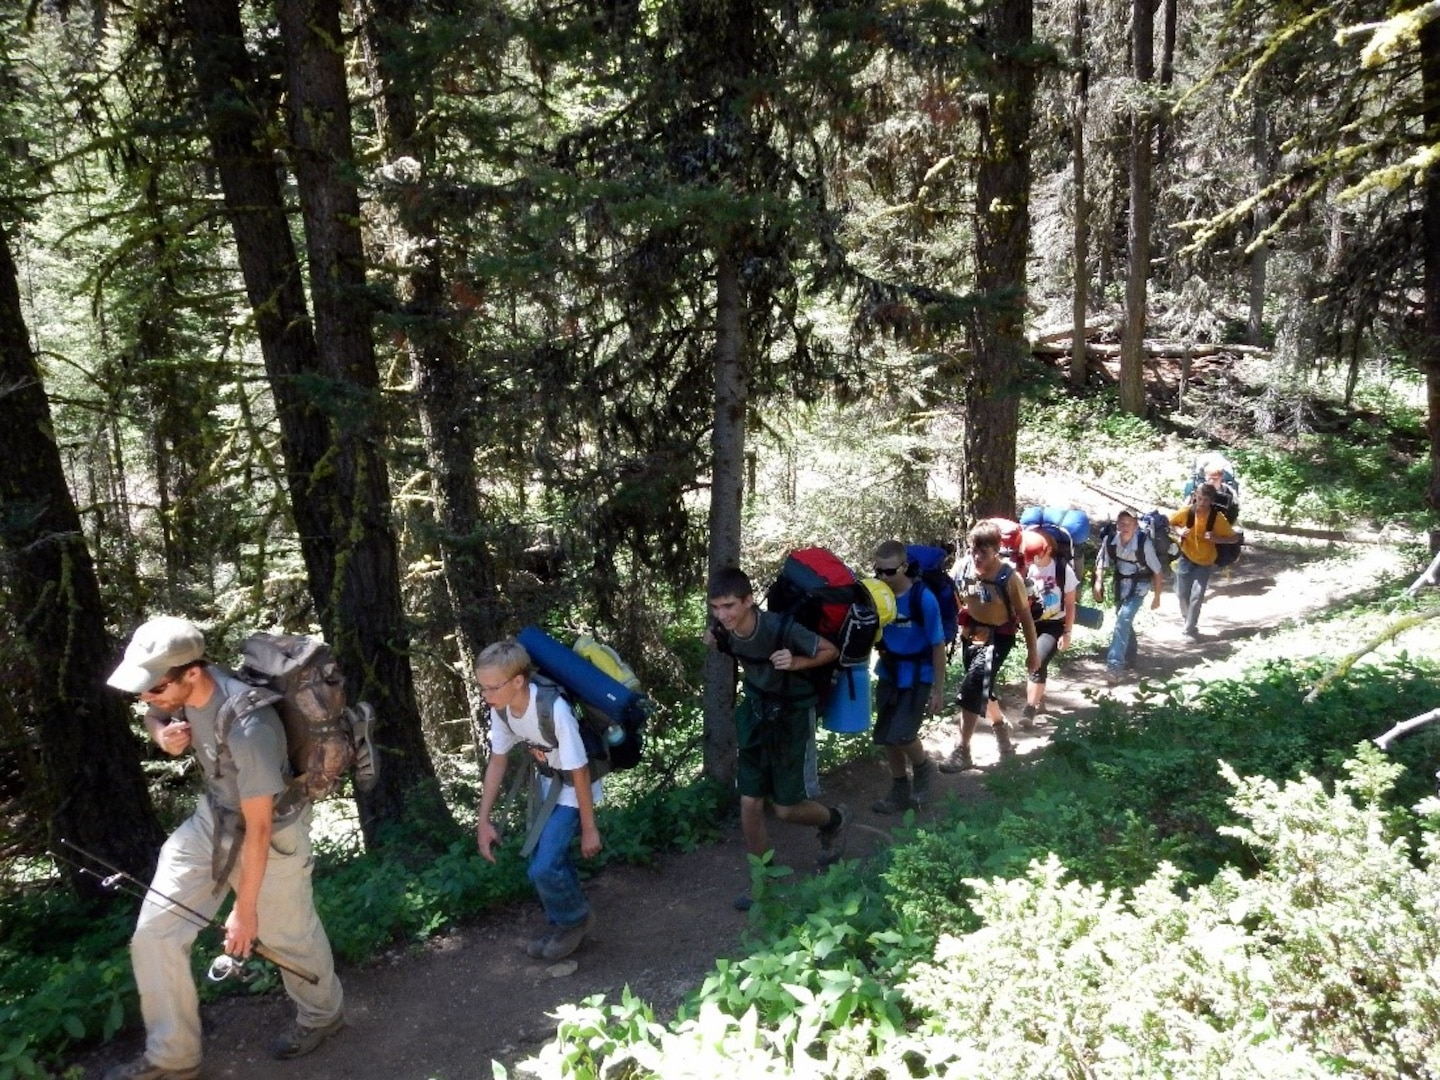 In recent years visitation has surged across public lands. The Forest Service has recorded an increase of 20% year over year, with the high point in 2020. More visitation has contributed to more search and rescue cases on national forests and grasslands across the county. (USDA Forest Service photo)